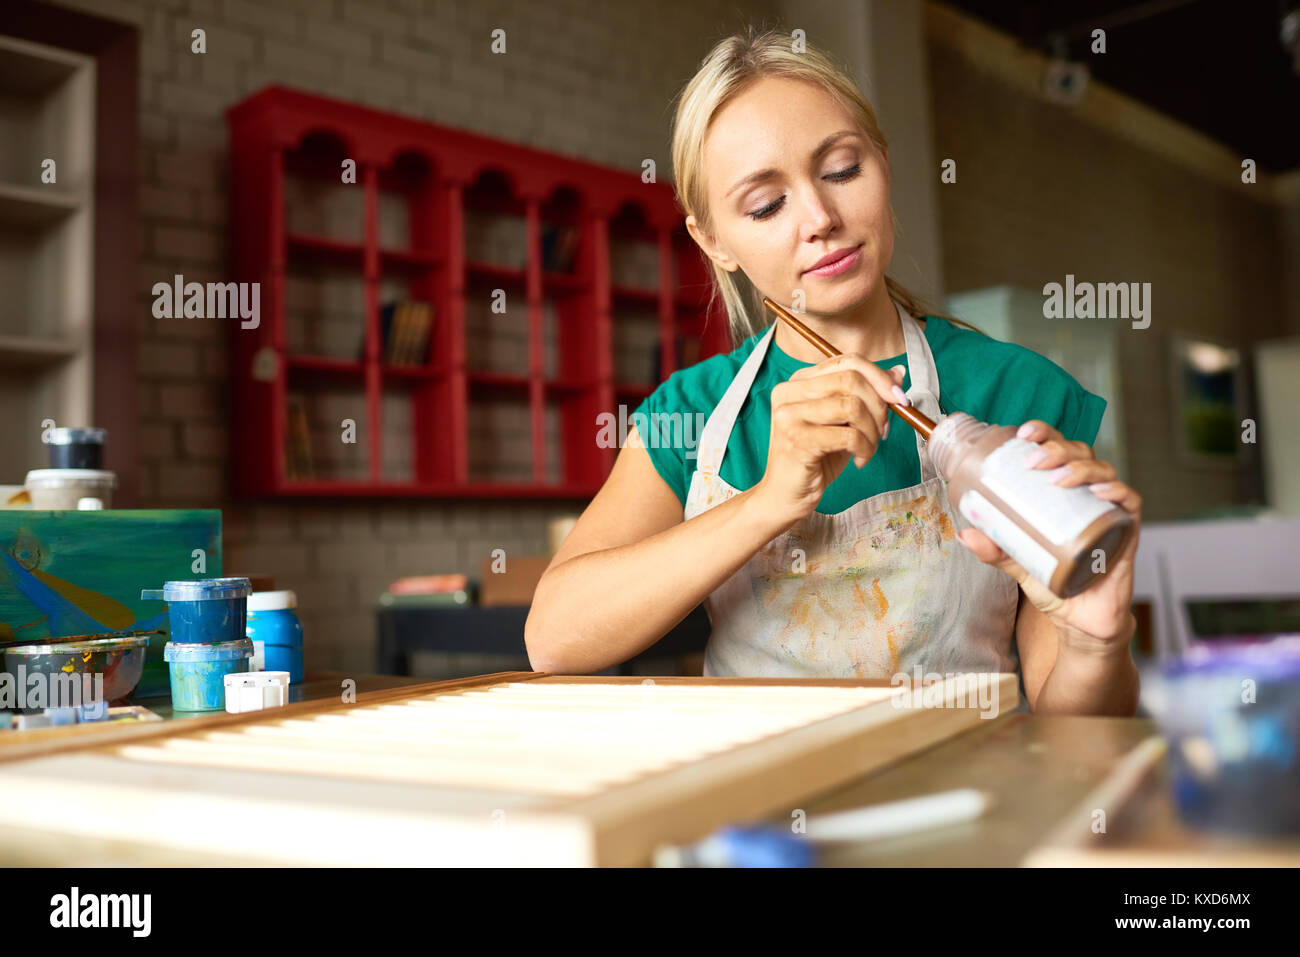 Pretty Young Woman Working in Art Studio - Stock Image